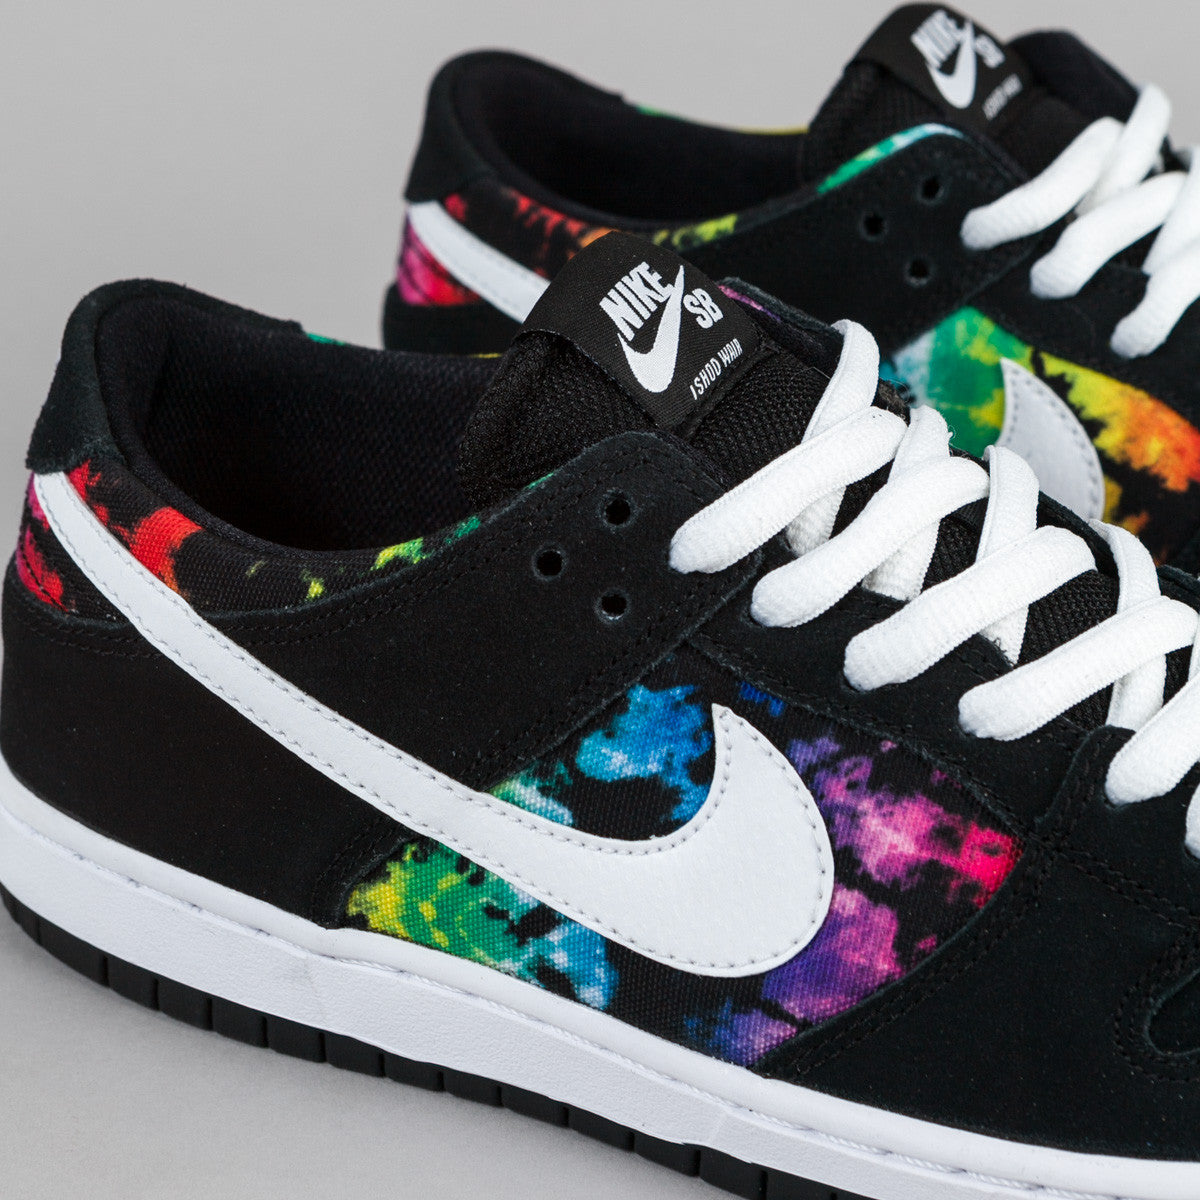 Nike SB Dunk Low Pro Ishod Wair Shoes - Black / White / Multi-Colour